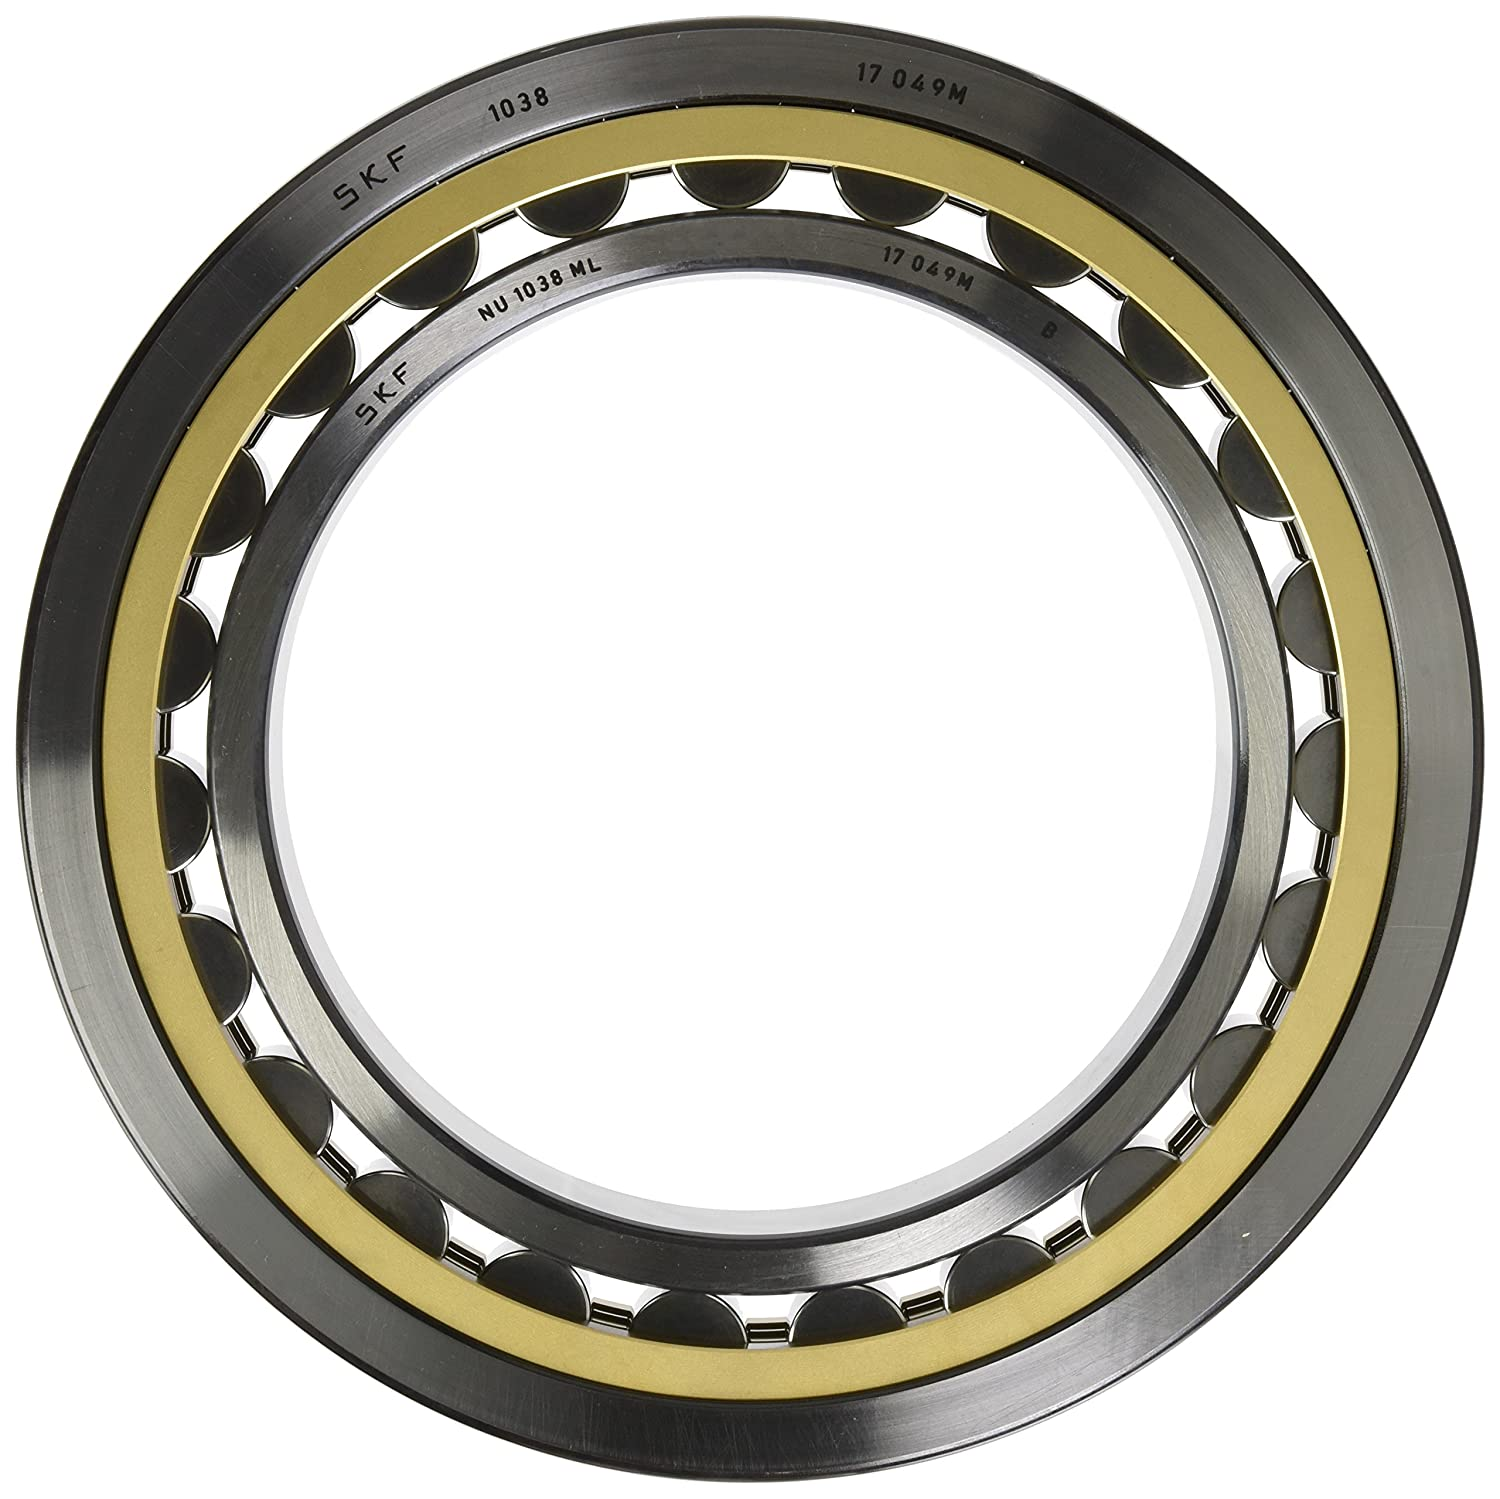 120mm Width 240mm Bore Straight Bore Single Row Removable Inner Ring Brass Cage Normal Clearance SKF NU 2248 MA Cylindrical Roller Bearing 440mm OD Standard Capacity Metric